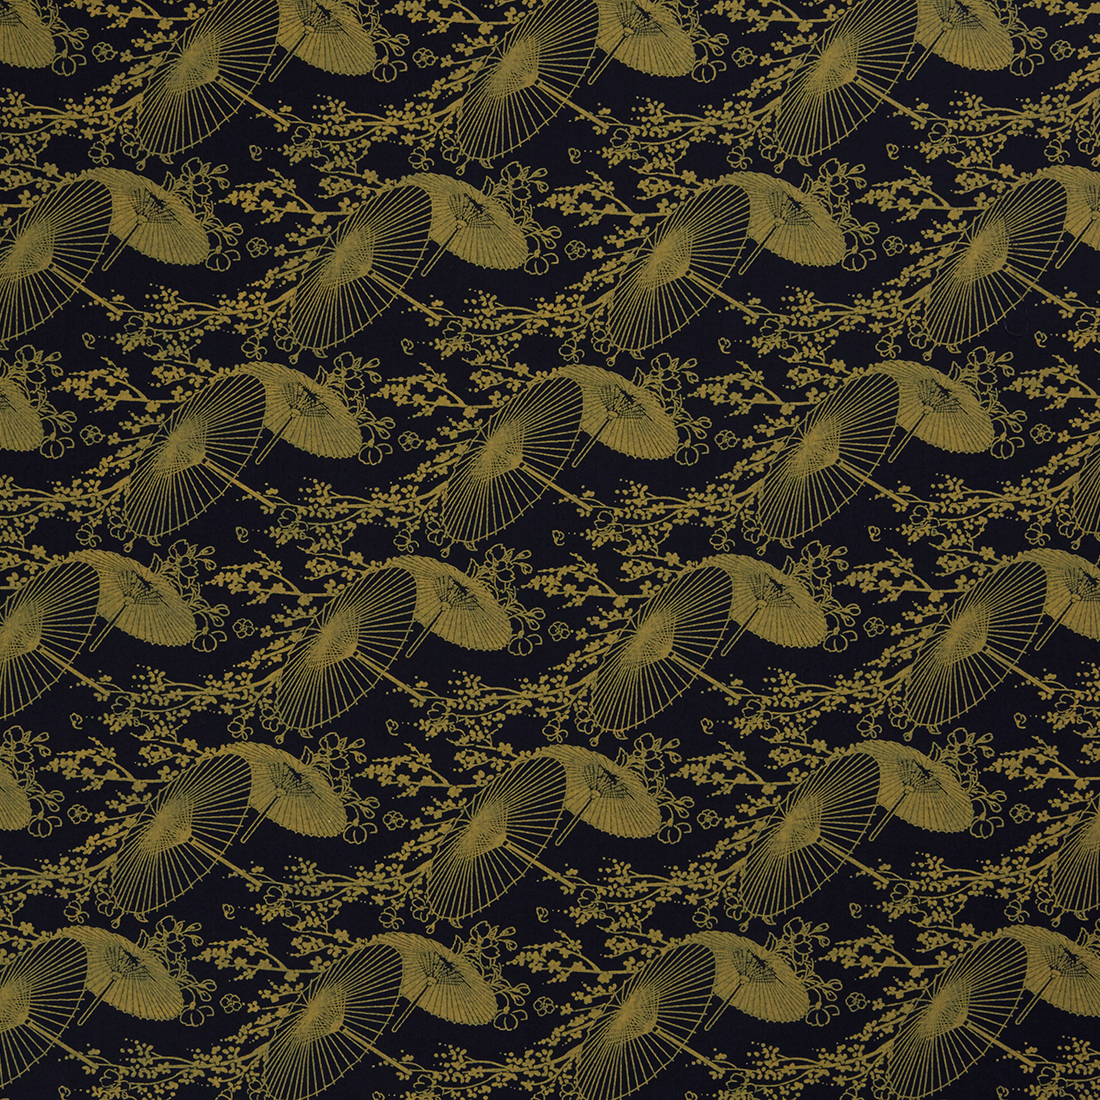 Wagasa Black Dress Fabric